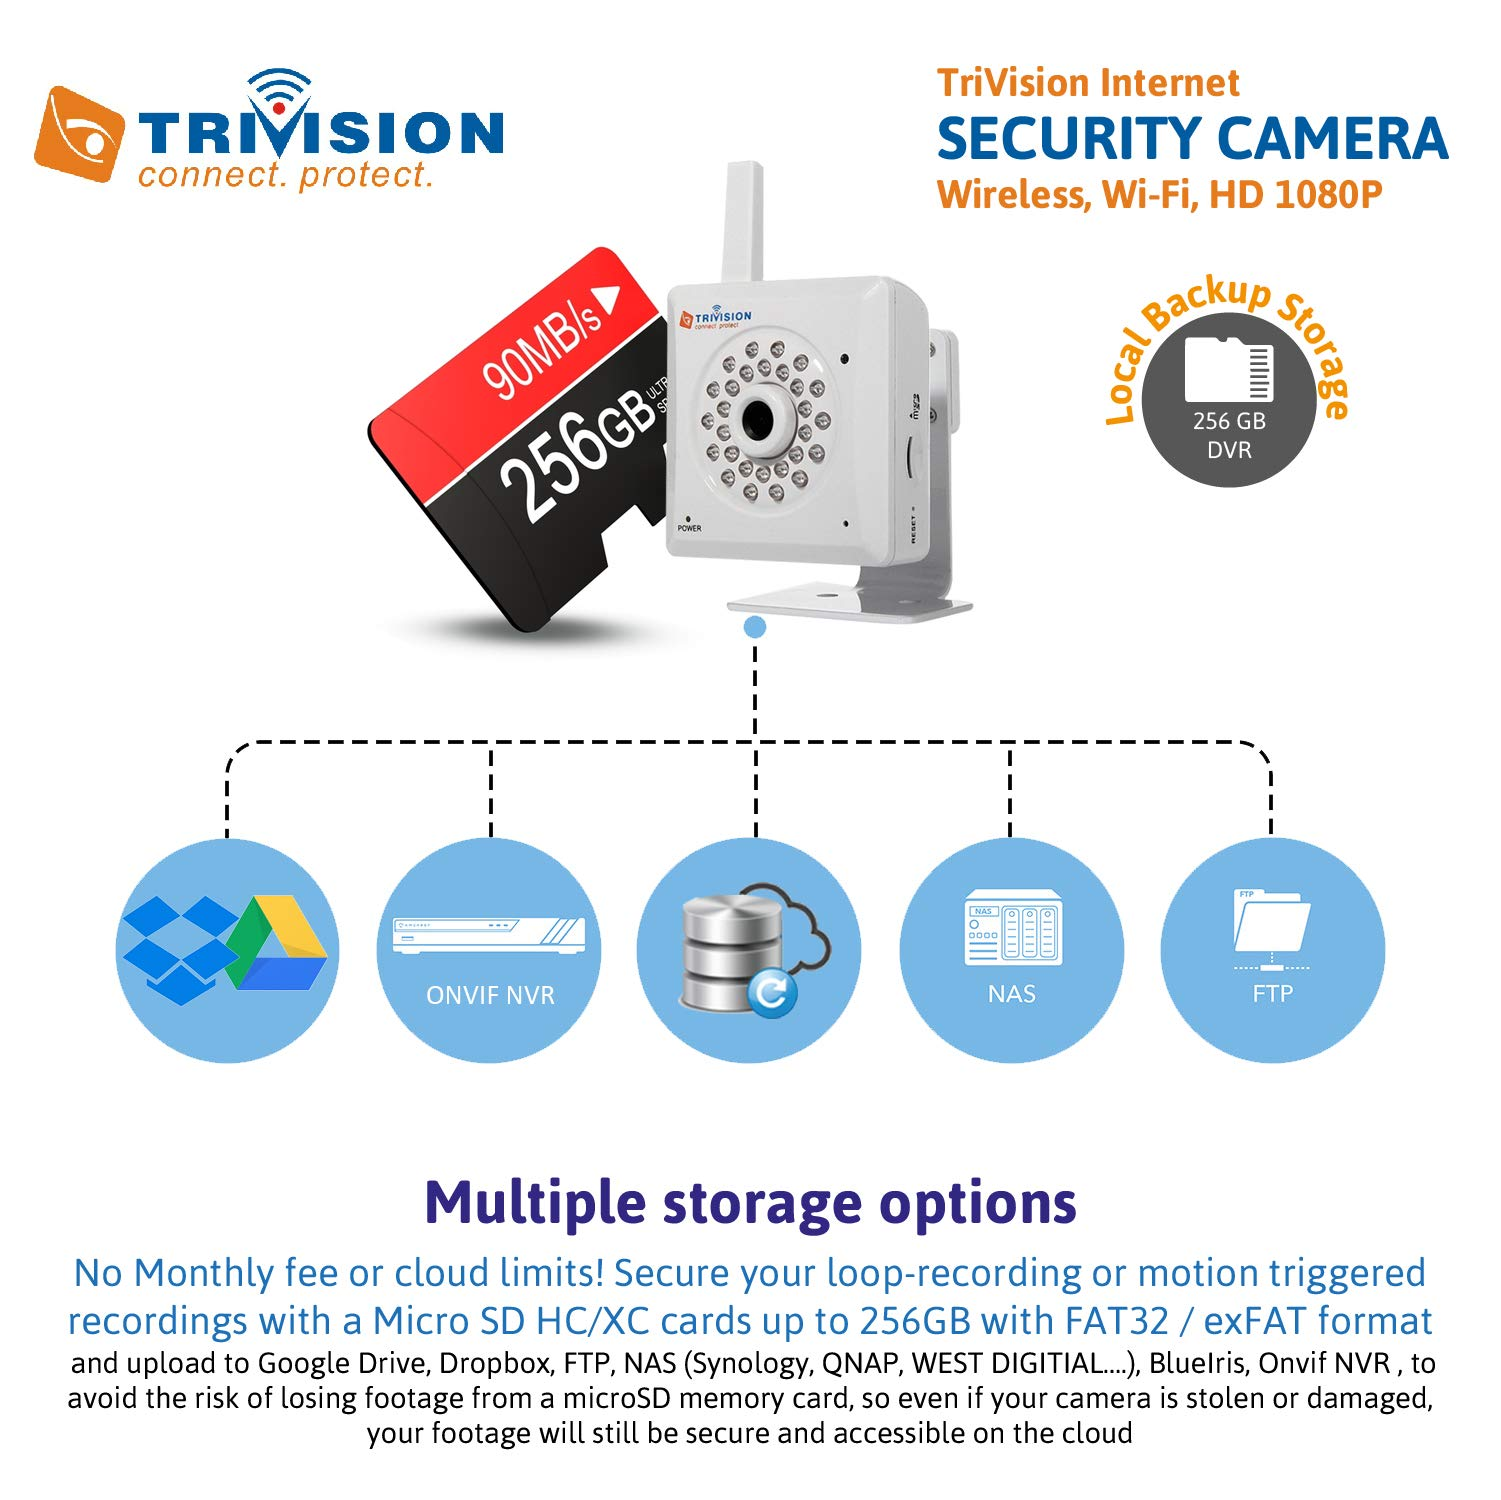 TriVision HD 1080P Security Camera, Indoor Wireless IP Network Camera for Home, Business, Baby, Pet Monitor with Android, iOS, PC, Mac App by Trivision